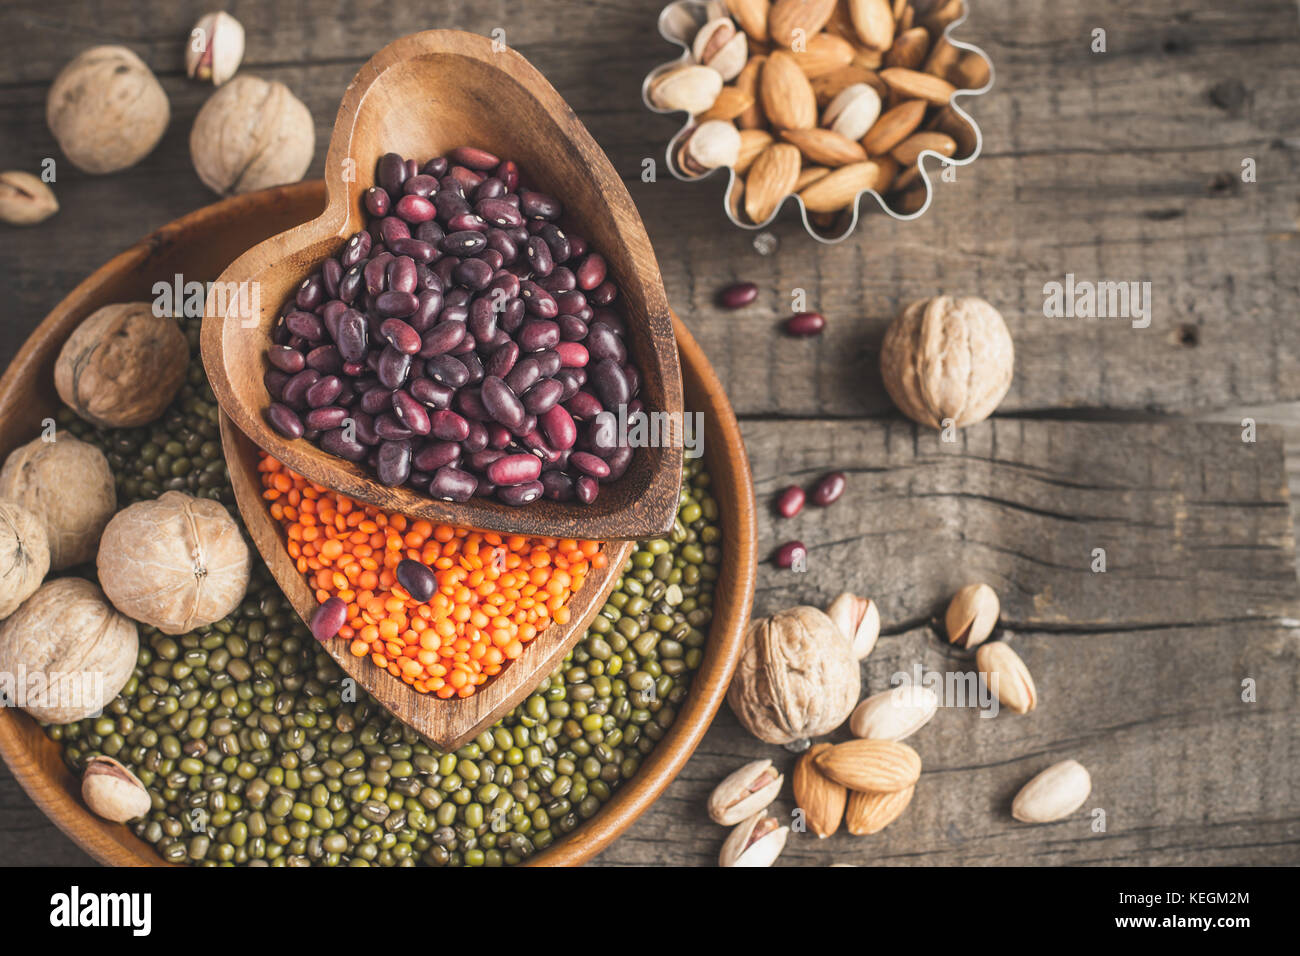 Sources of vegetable protein are various legumes and nuts. Top view with copy space. - Stock Image